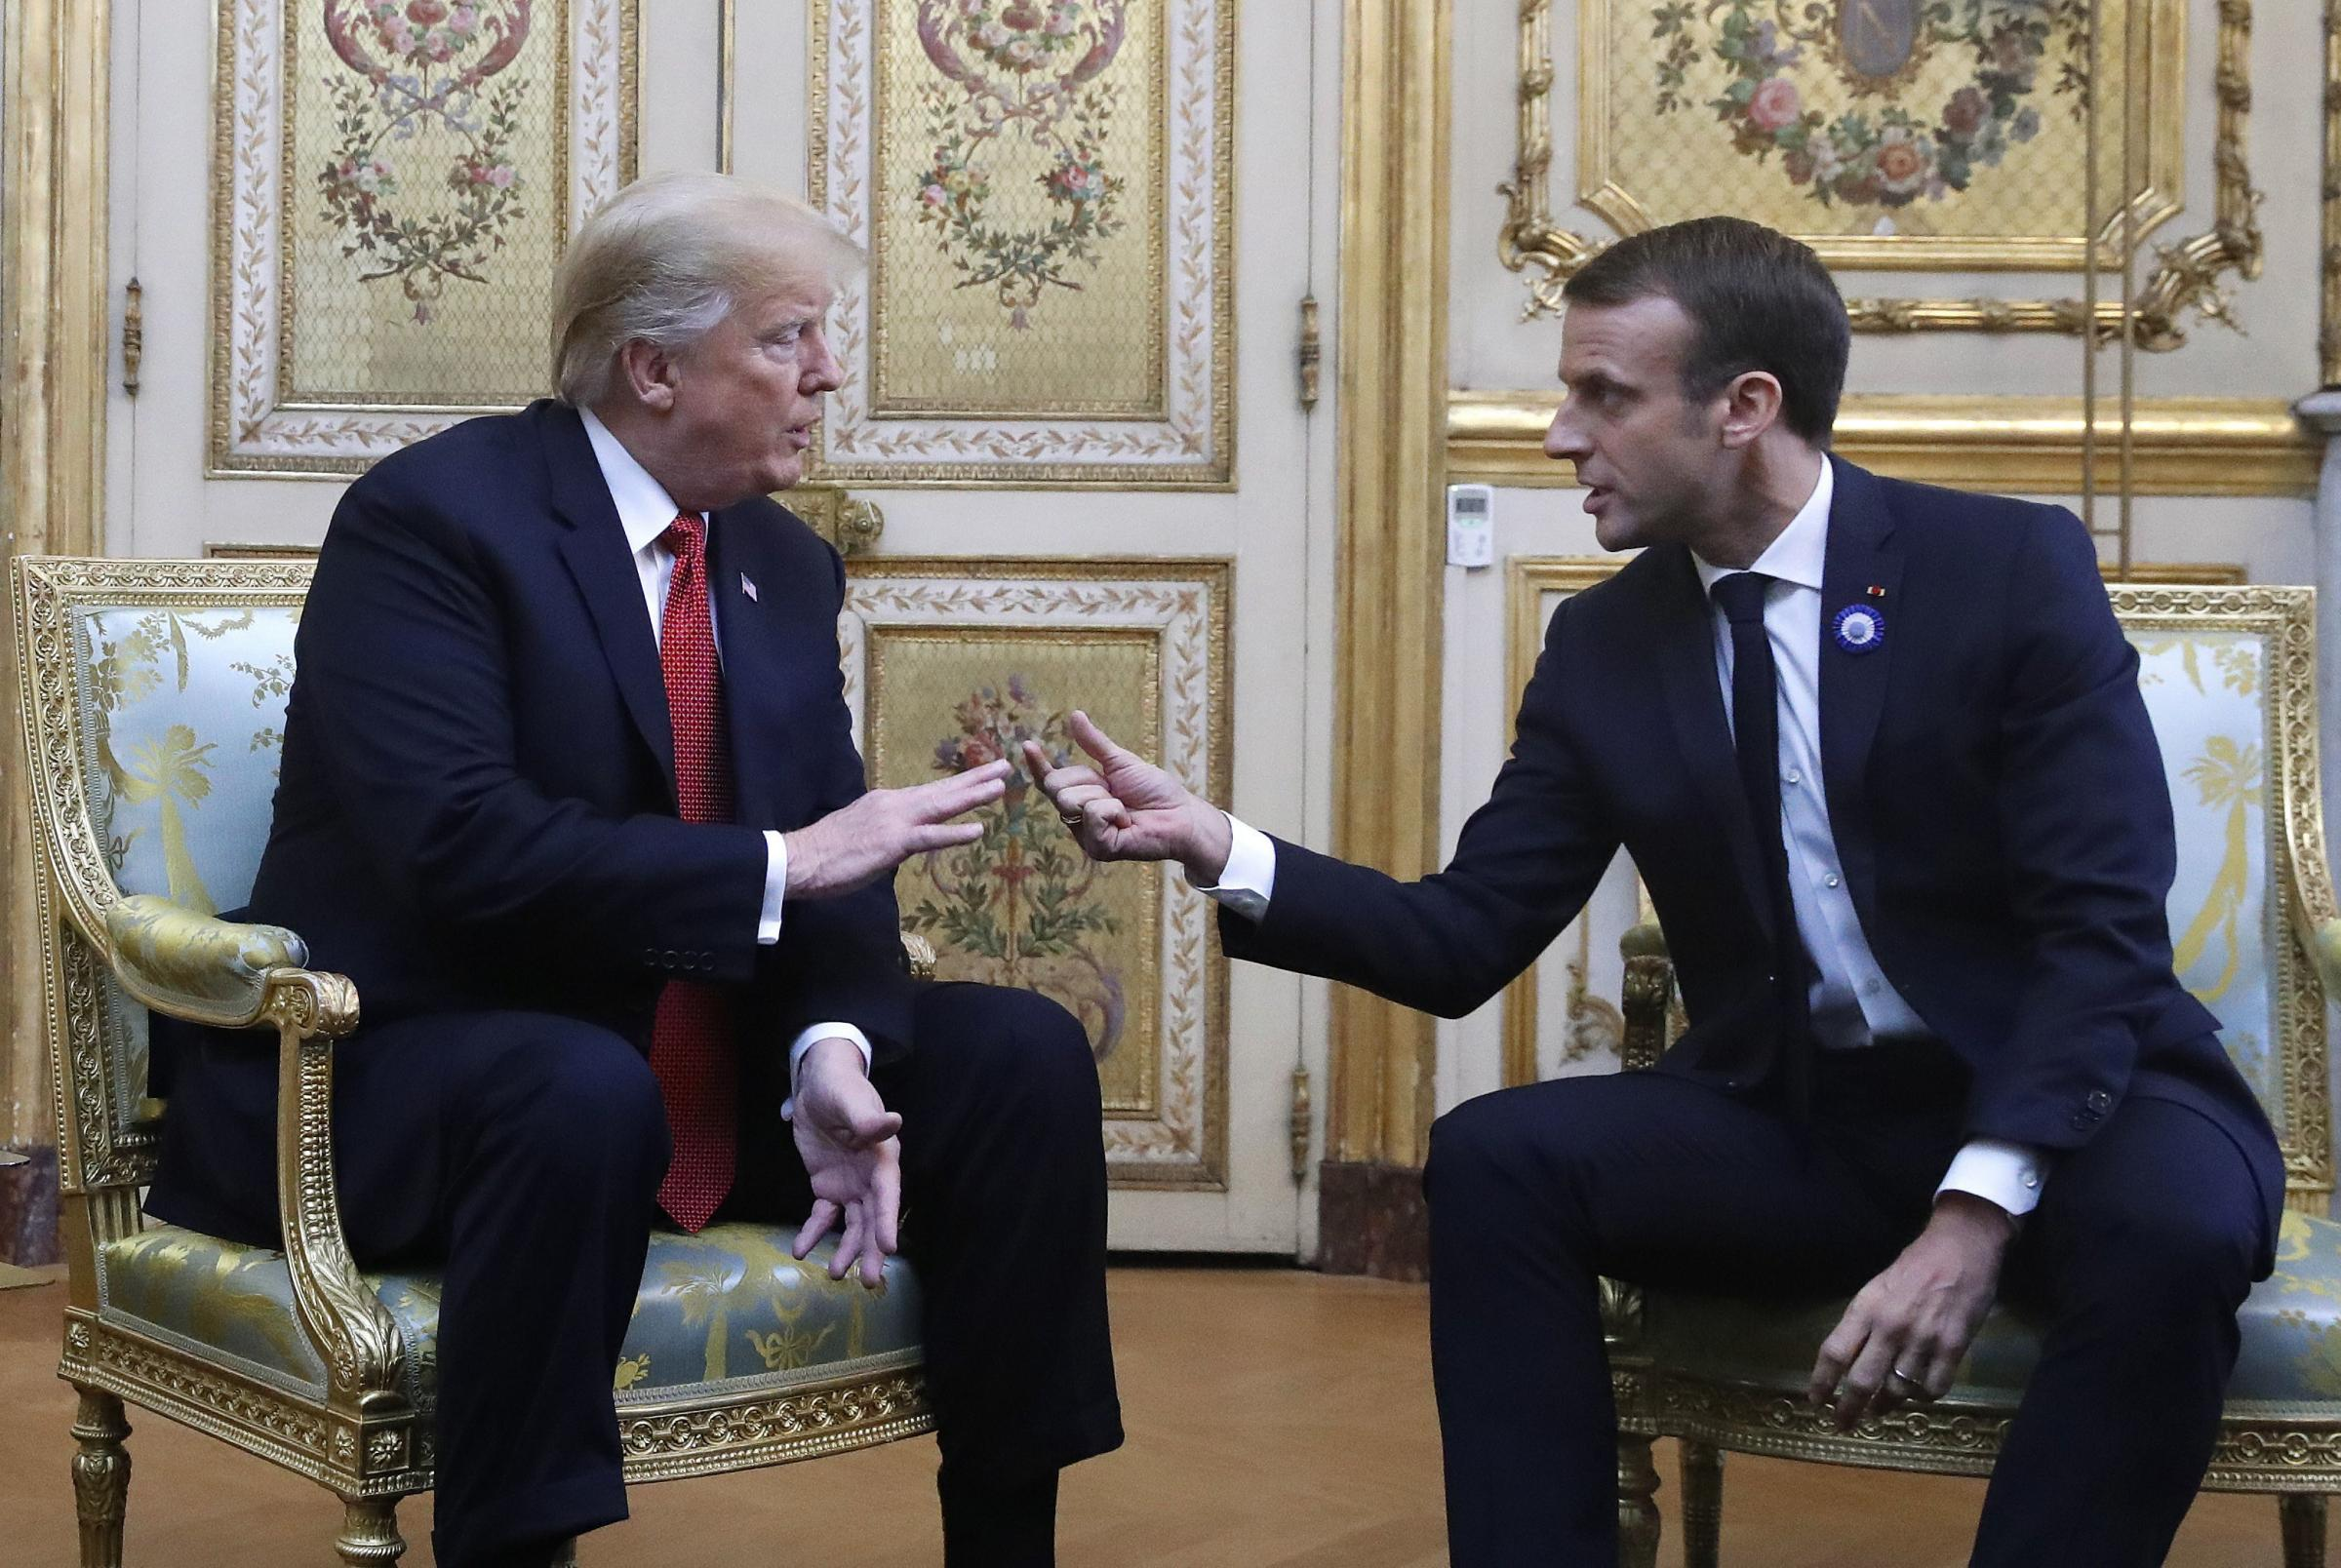 Russia, not Germany, would have prevailed in France without the Allies